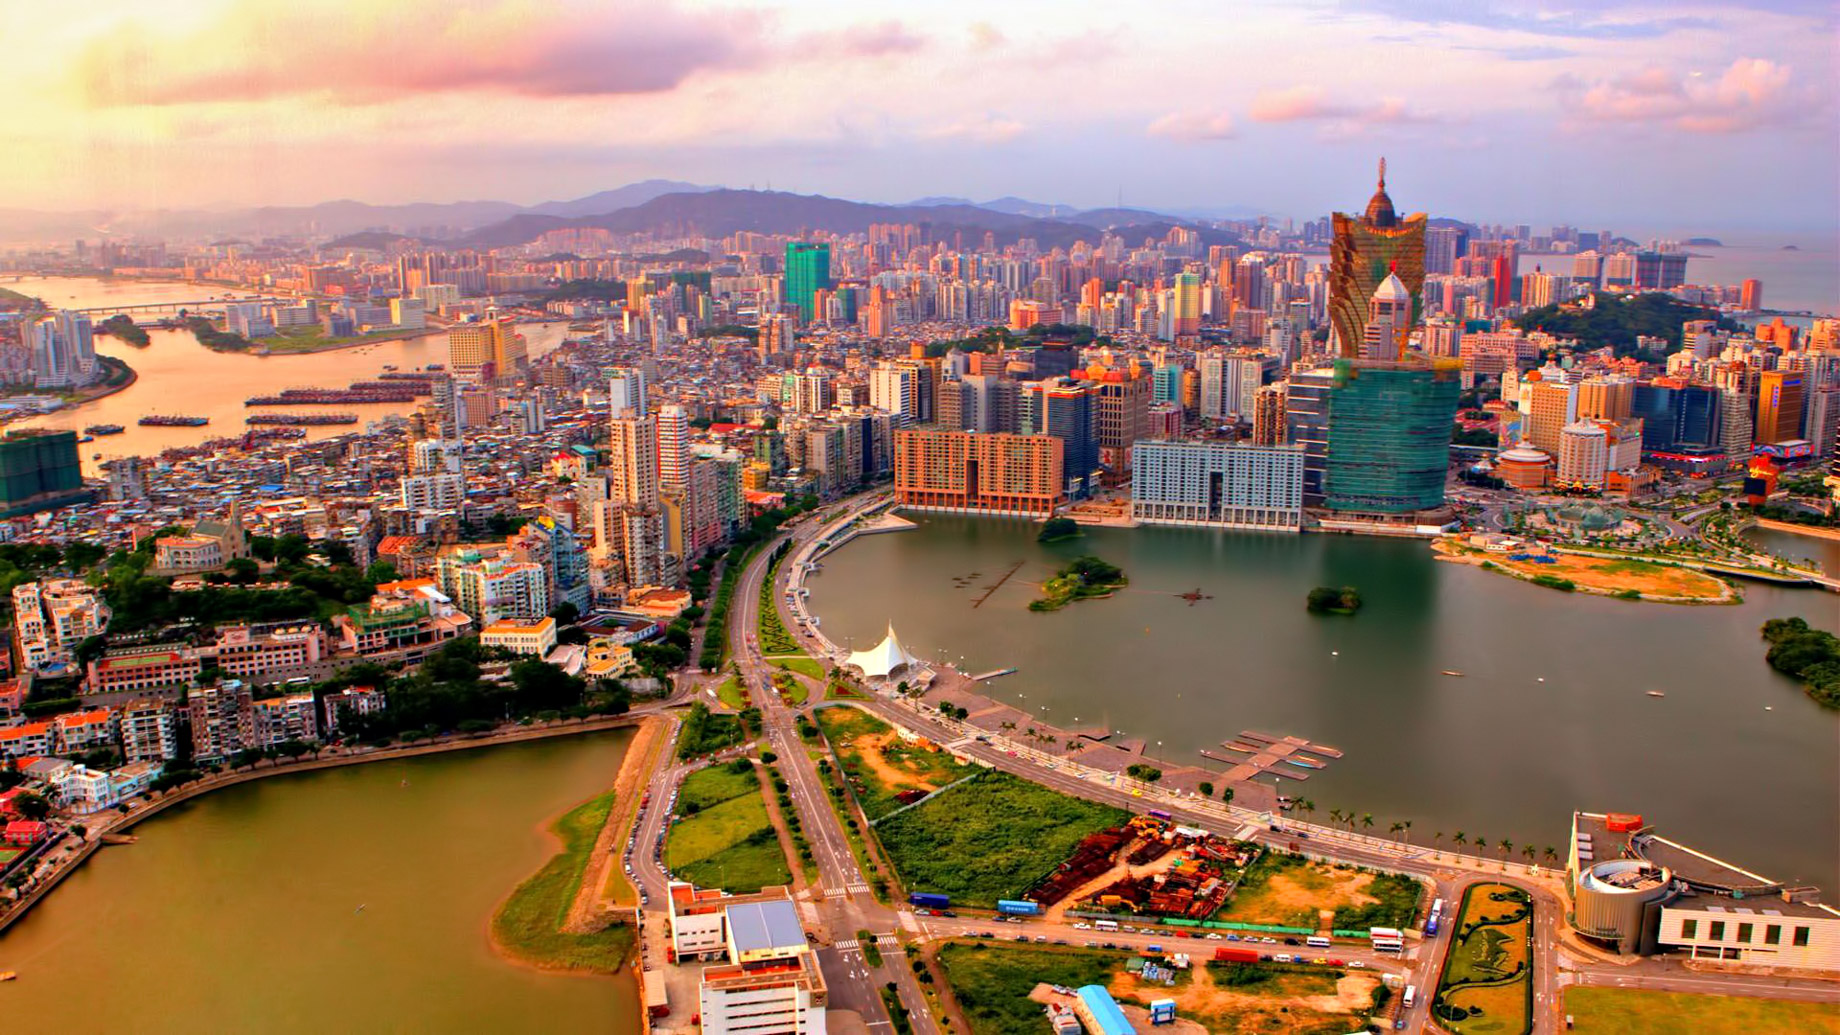 Macau, China - Popular Second Home Locations for Professional Gamblers